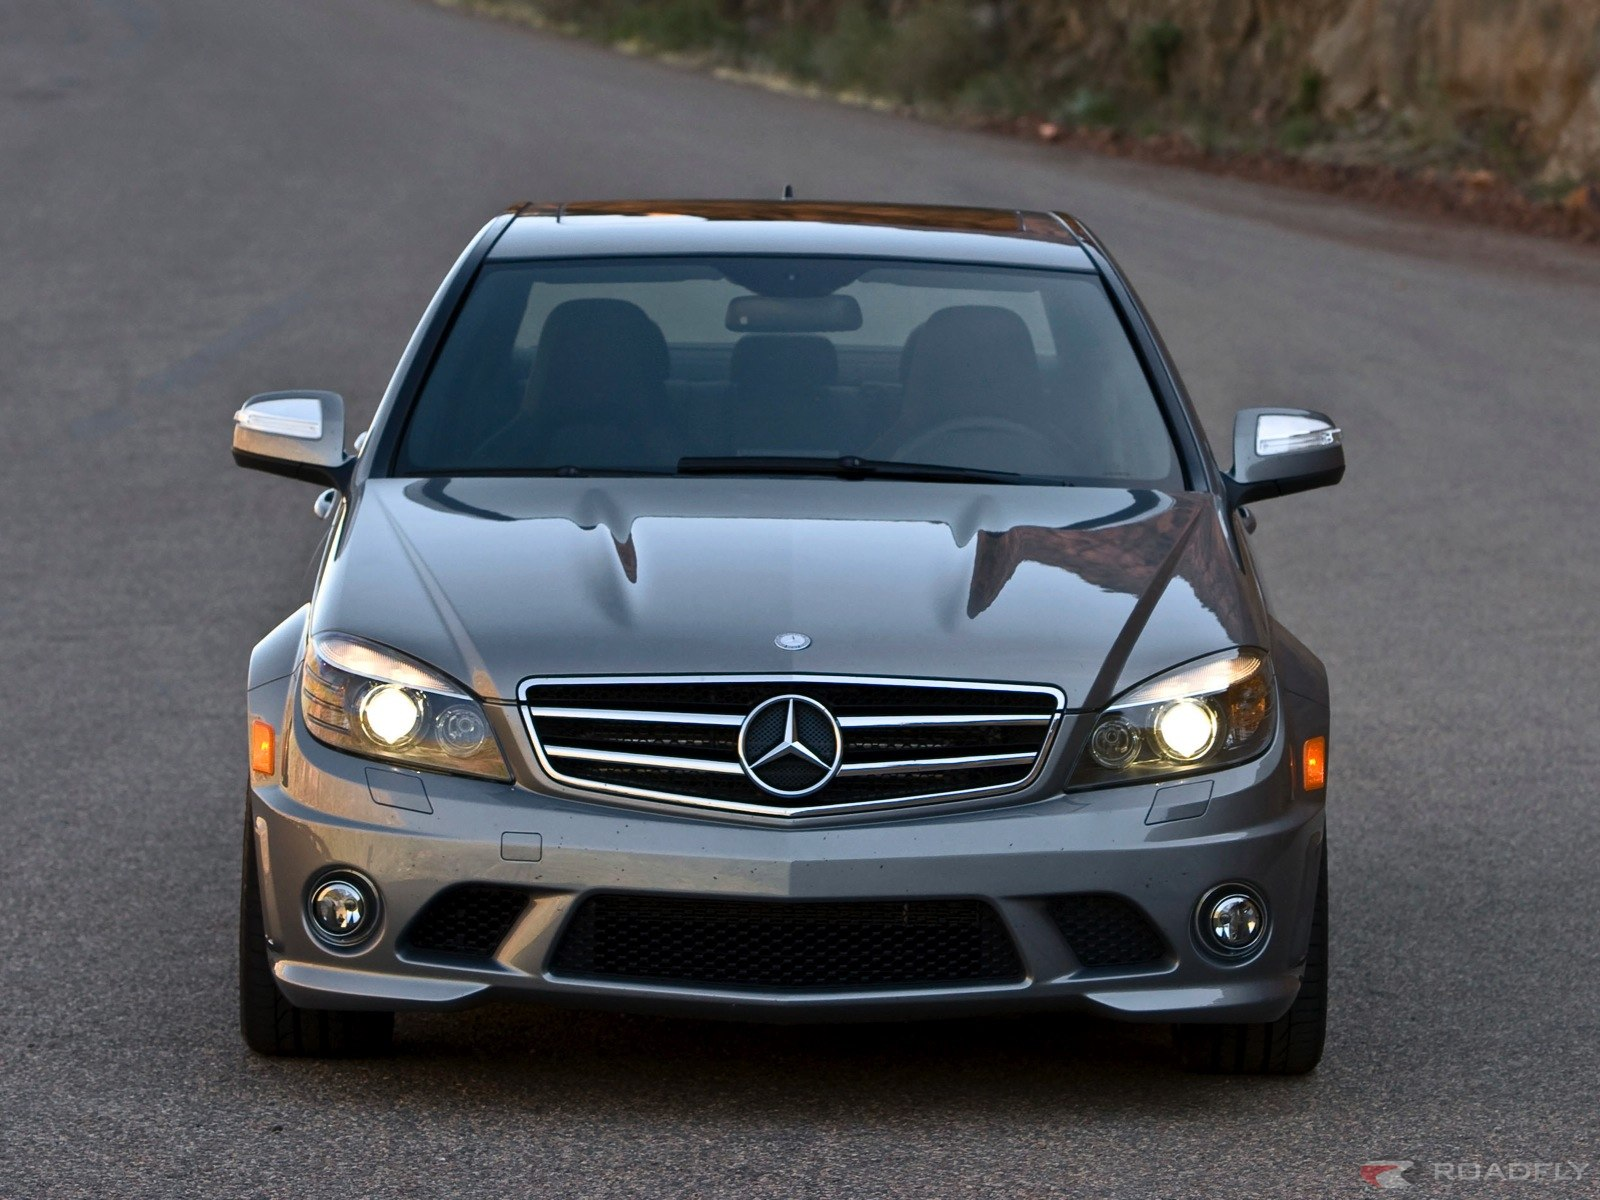 Mercedes benz c 63 amg technical details history photos for Mercedes benz amg parts